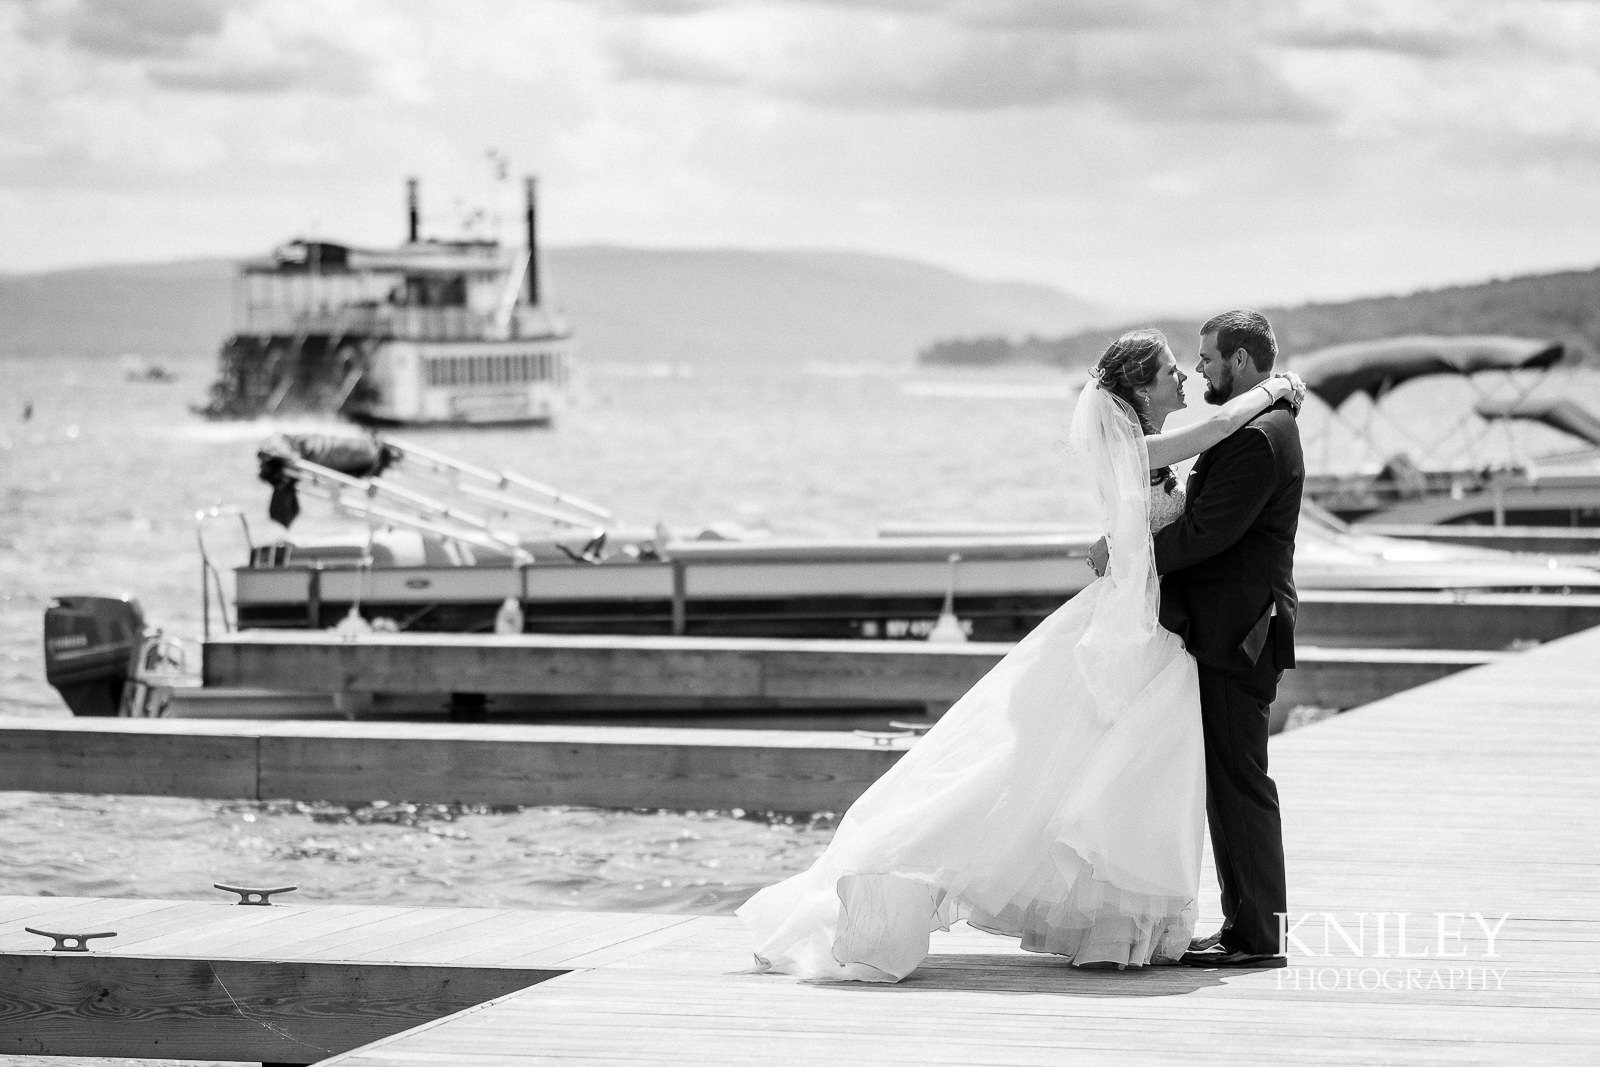 045 - Canandiagua NY wedding pictures - Kershaw Park - Canandiagua Lake - XT2B2608.jpg